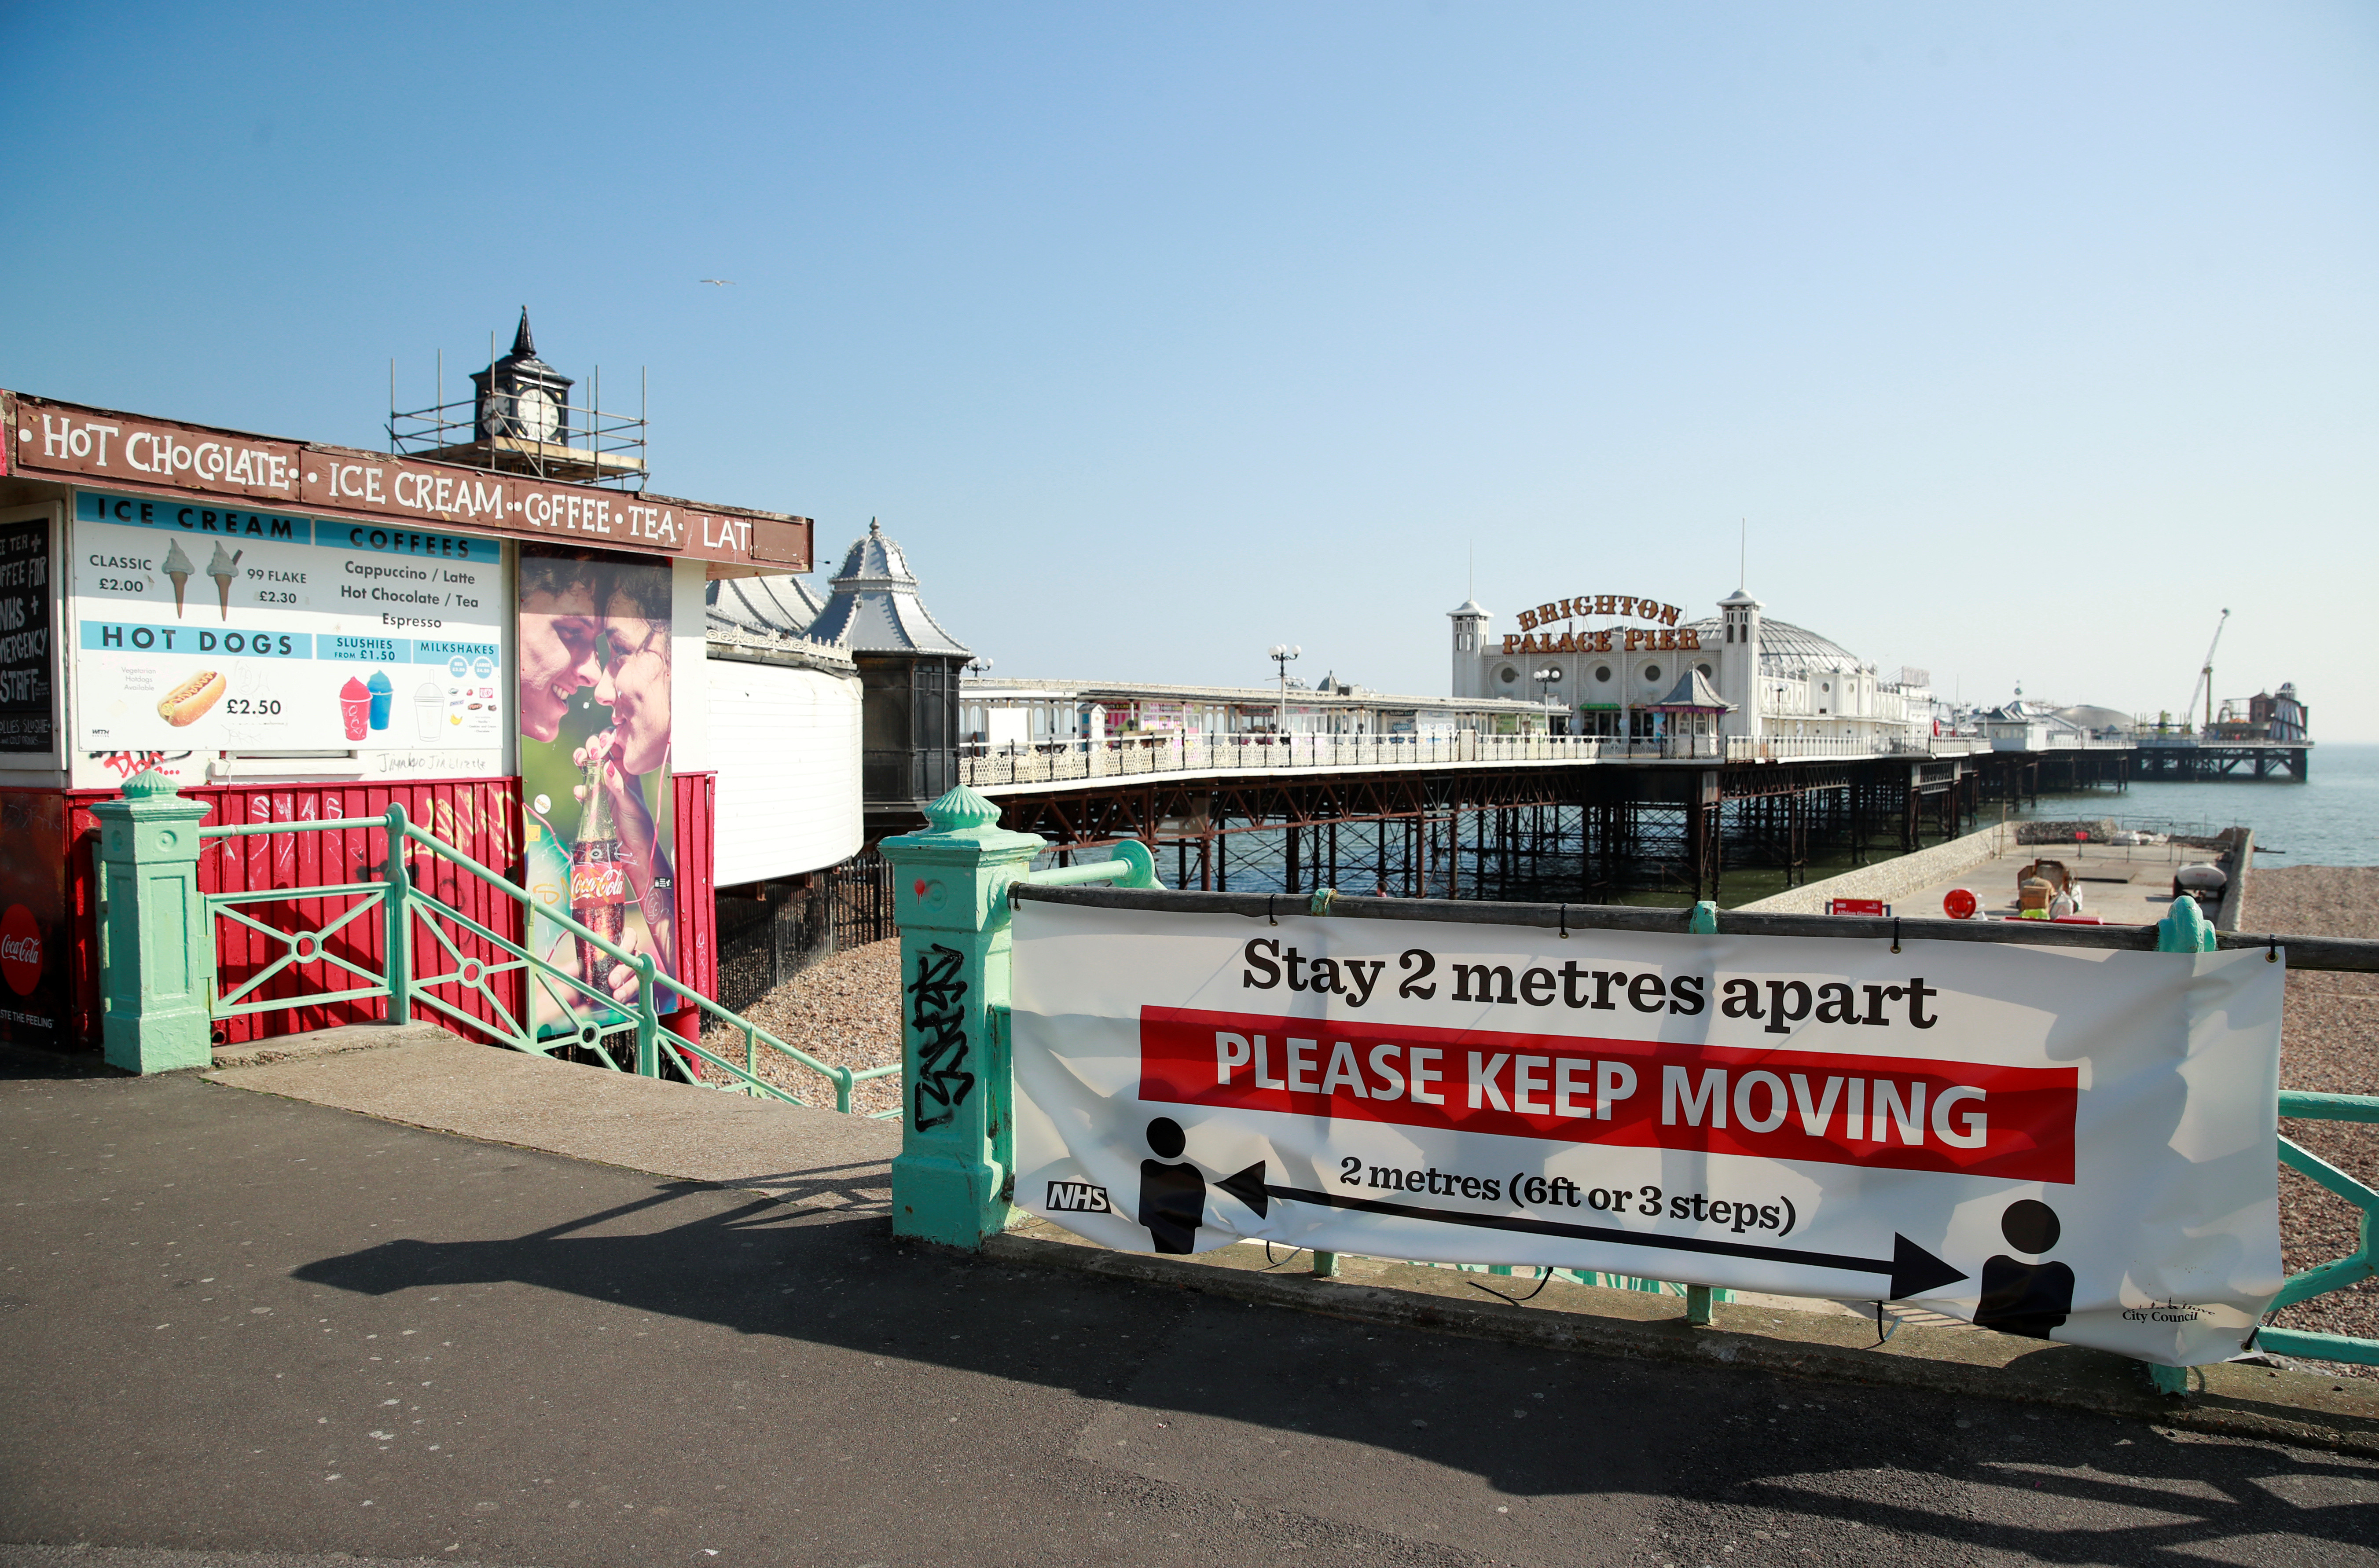 A sign telling people to stay 2 metres apart is seen on Brighton Palace Pier as the spread of the coronavirus disease (COVID-19) continues, Brighton, Britain, April 10, 2020. REUTERS/Andrew Couldridge - RC2Q1G96WCHO